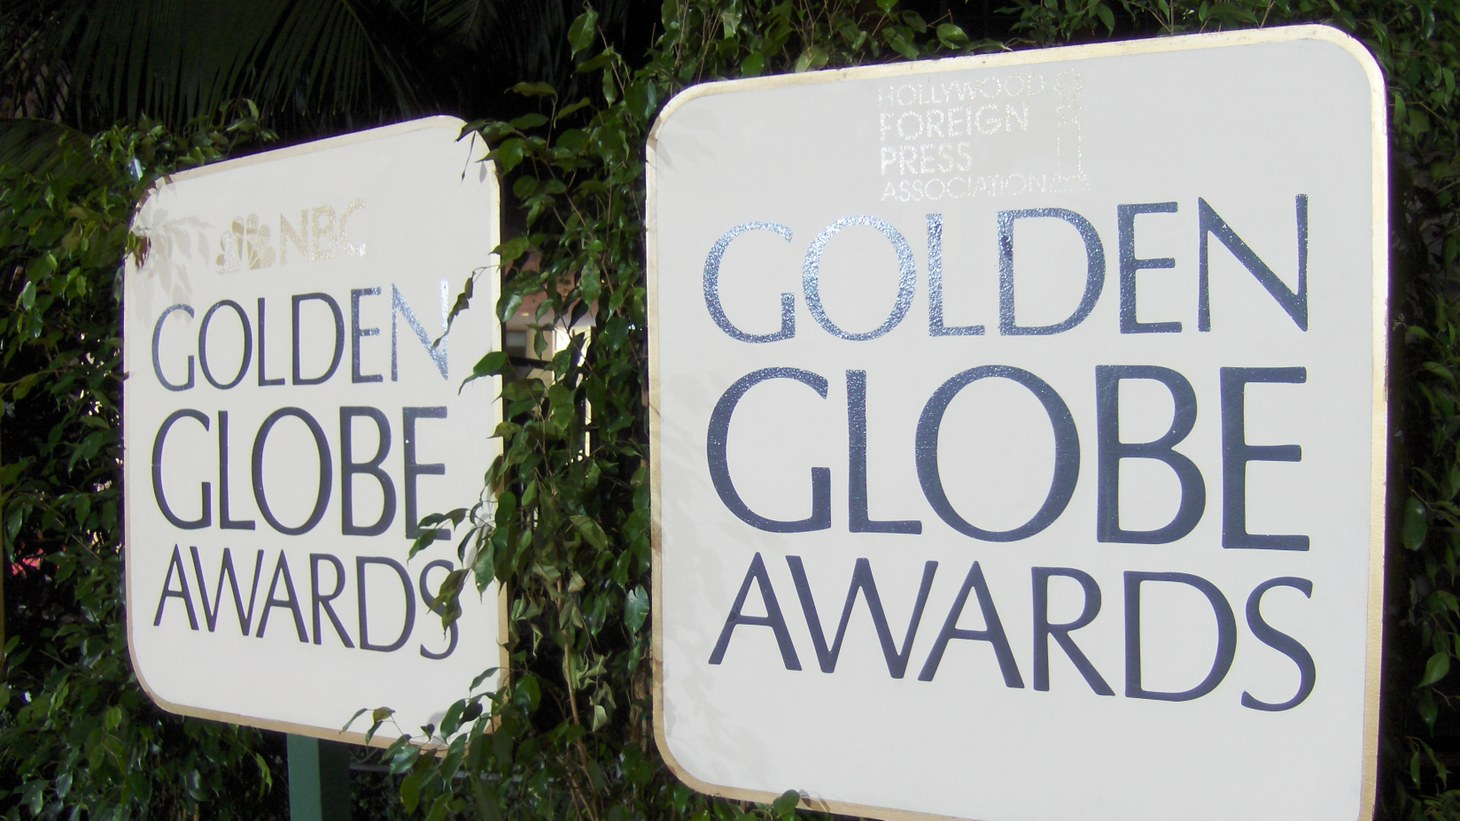 Some members of the Hollywood Foreign Press Association, the group behind the Golden Globes, are accusing the association of corruption.